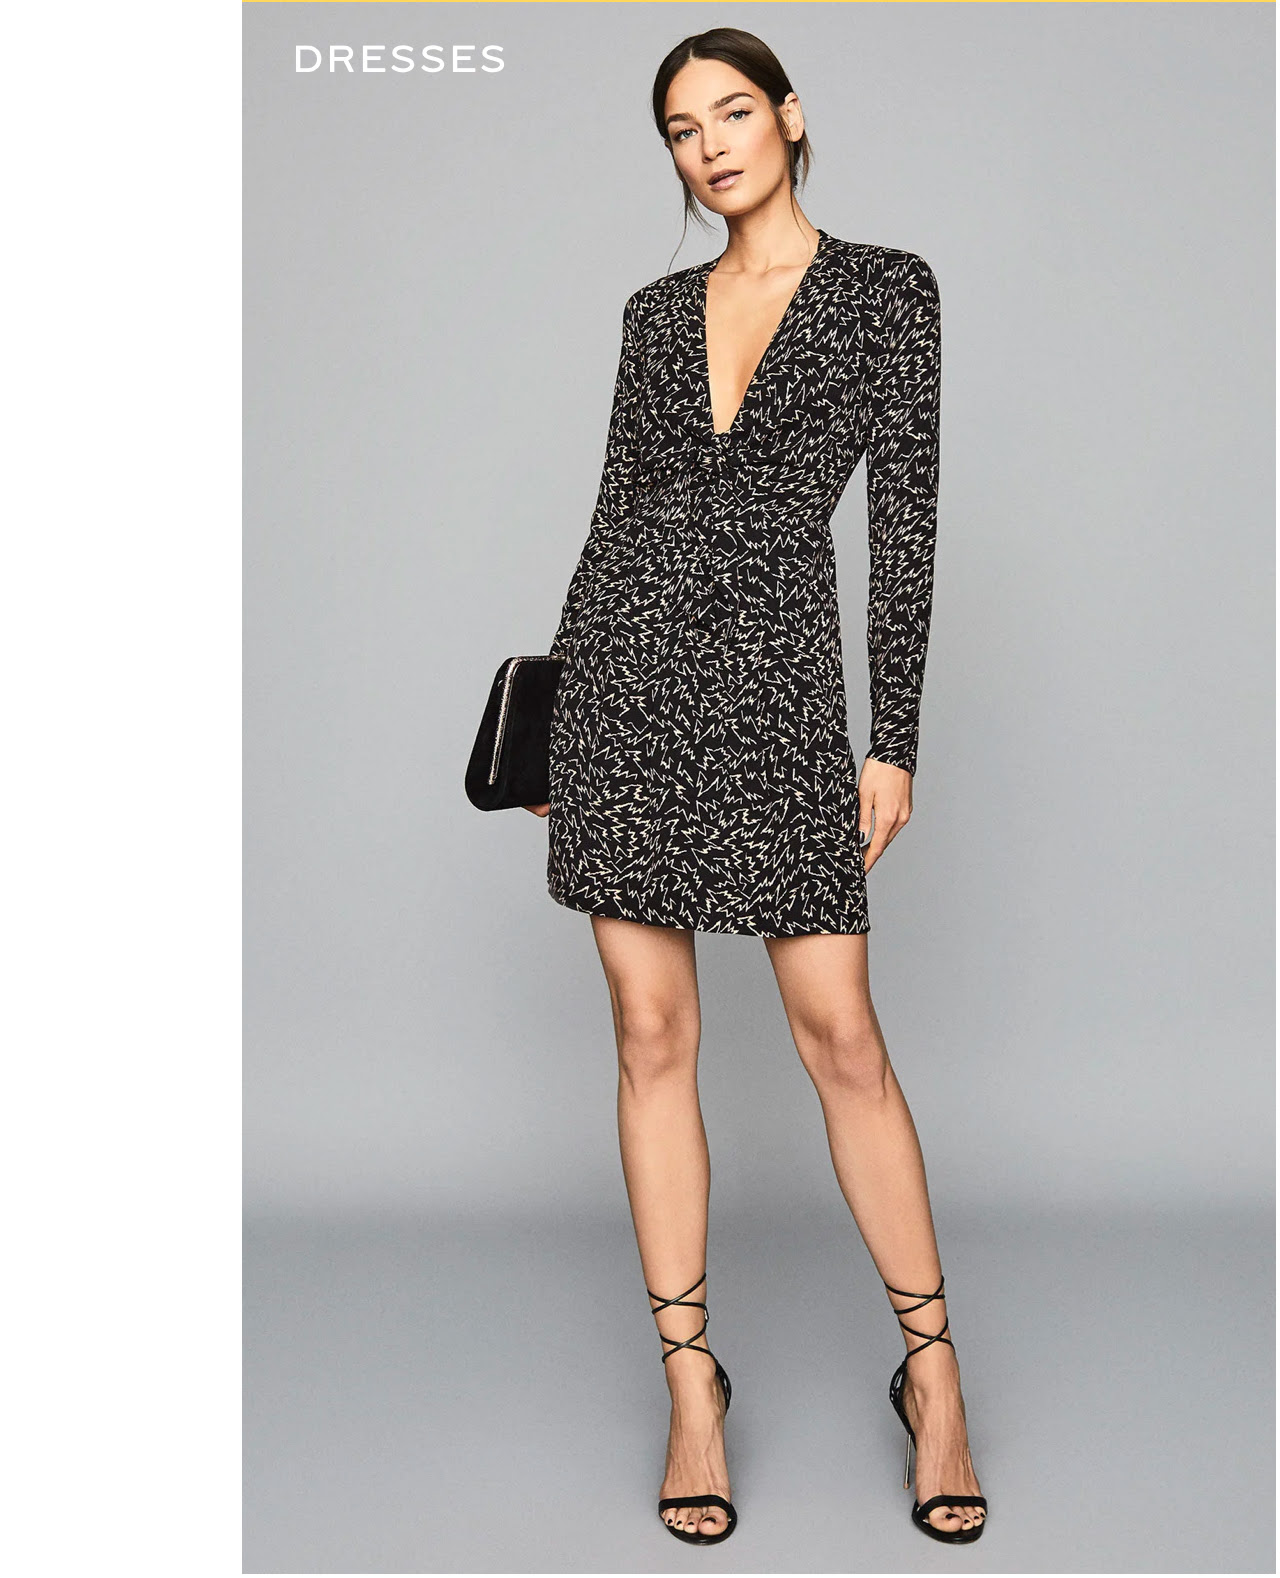 REISS - Sale By Category - Up To 50% Off